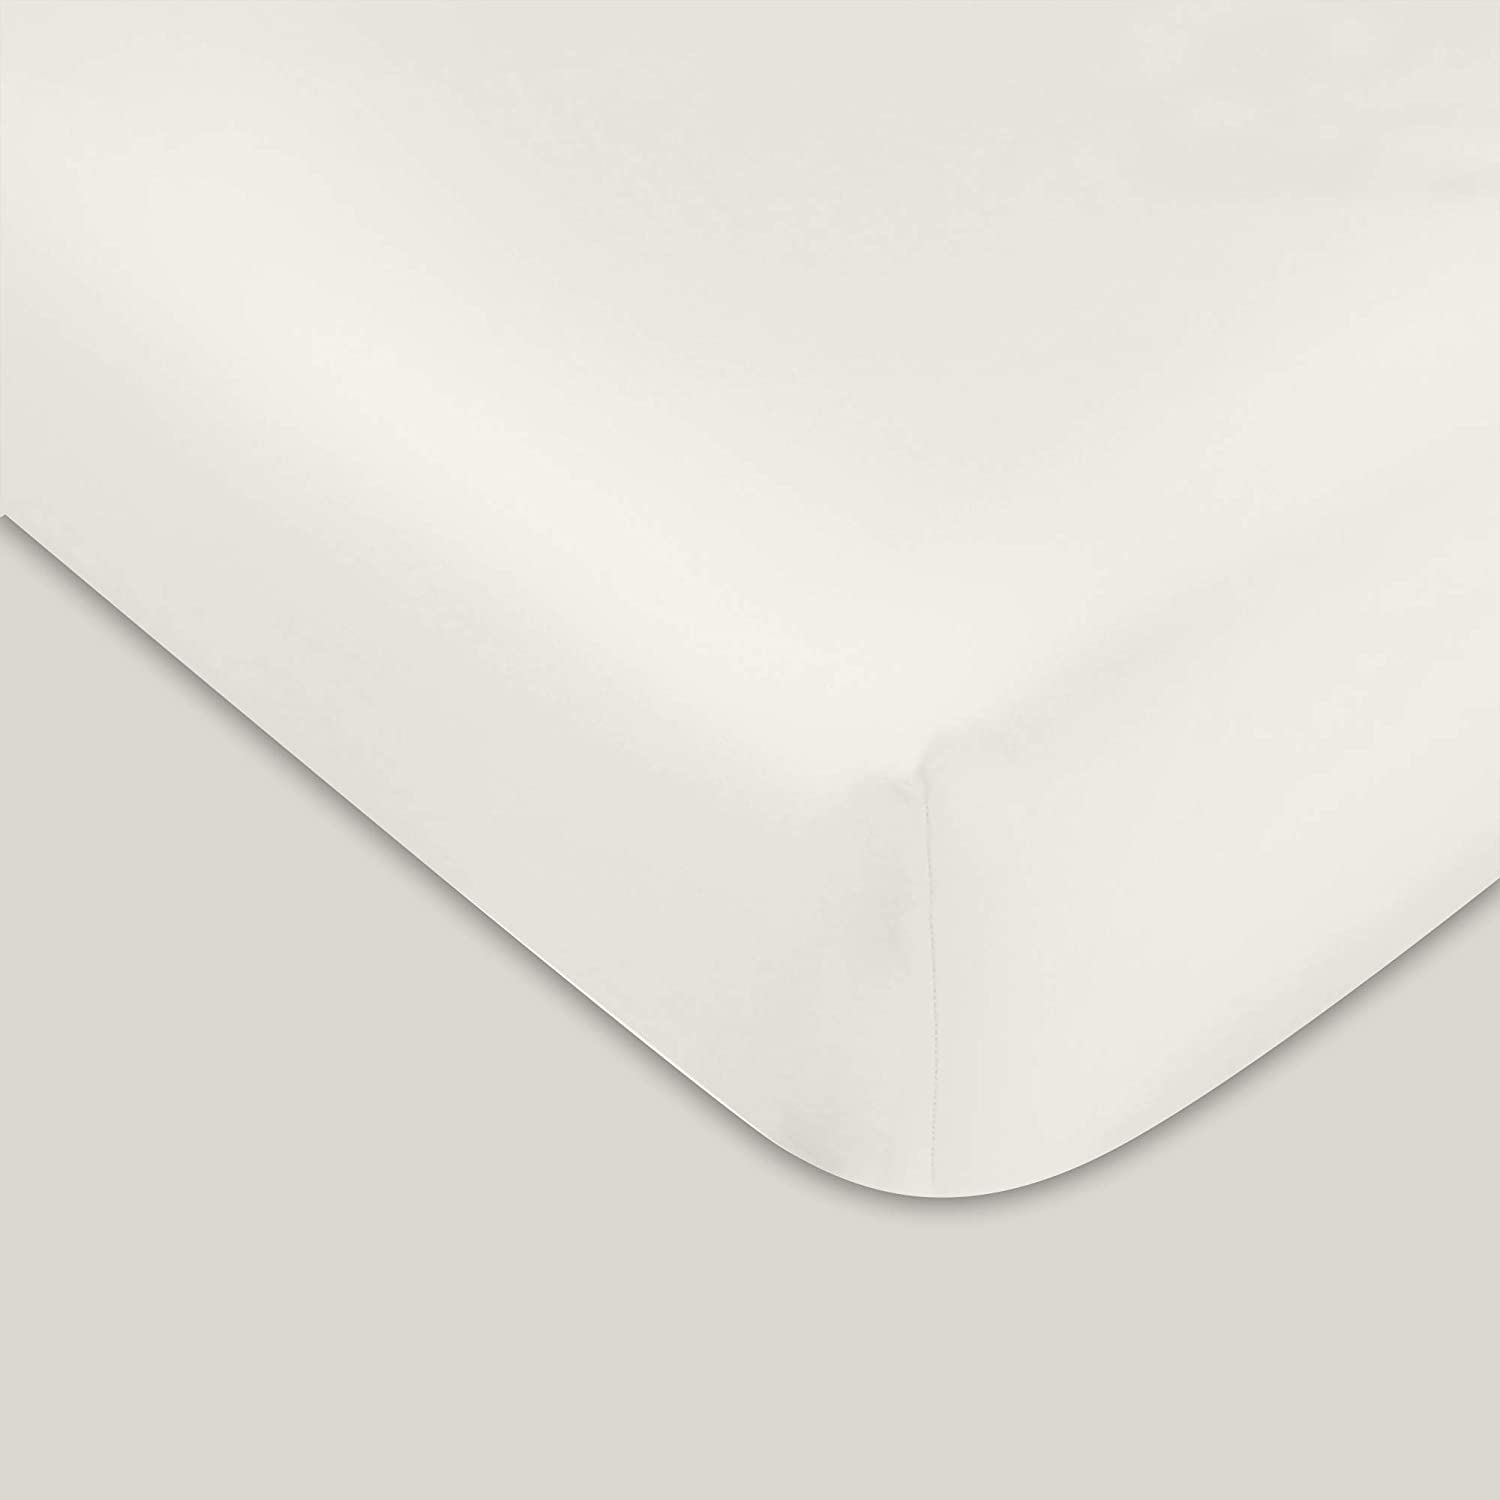 """400 TC GOTS Certified 100% Organic Cotton Queen Sateen Weave Fitted Sheet - Fits Mattress Up to 16"""" Deep Pocket - Supremely Soft & Shiny Close to Nature Biodegradable Sheet - Ivory - Queen Fitted"""